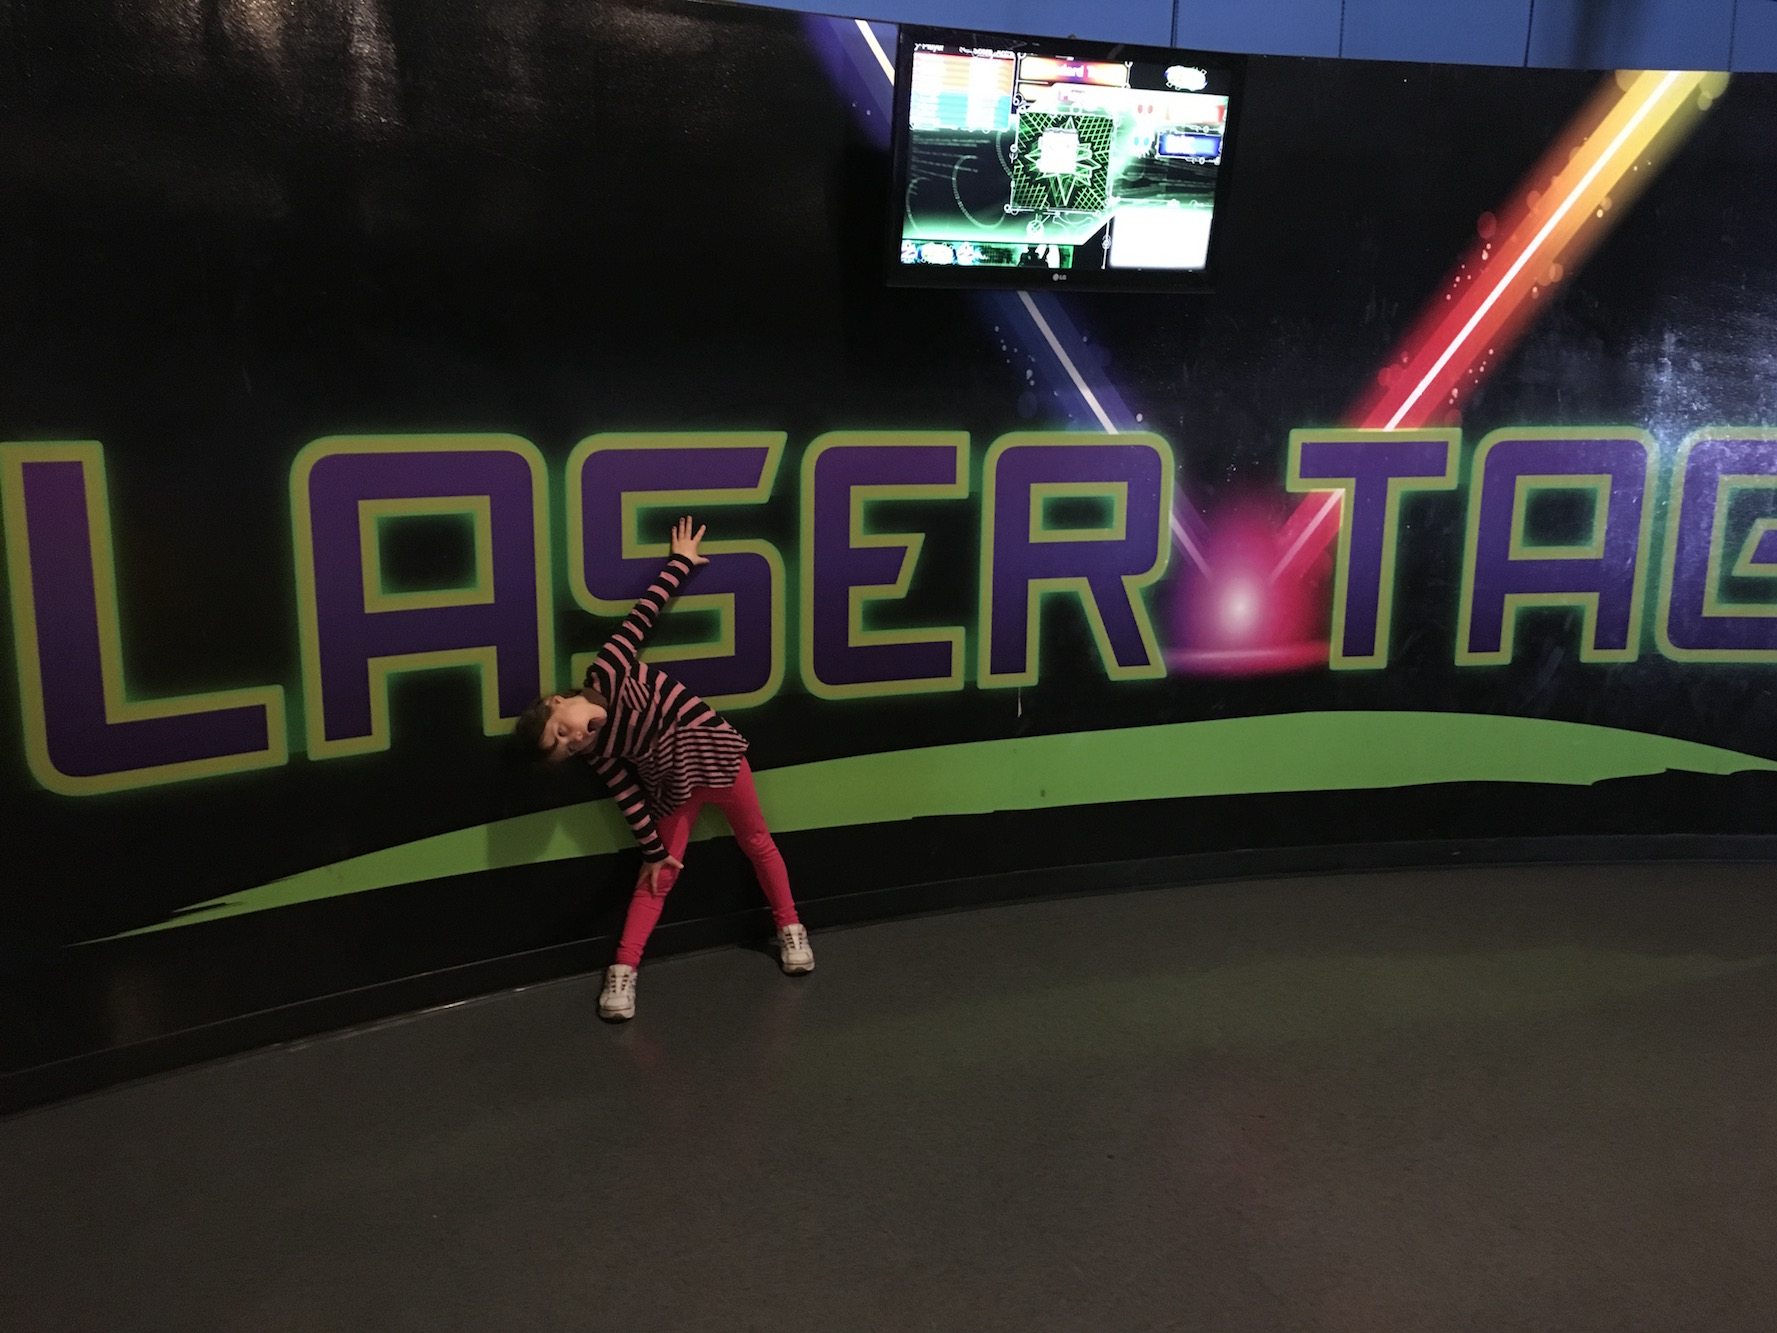 Lily's fun Laser Tag photo.